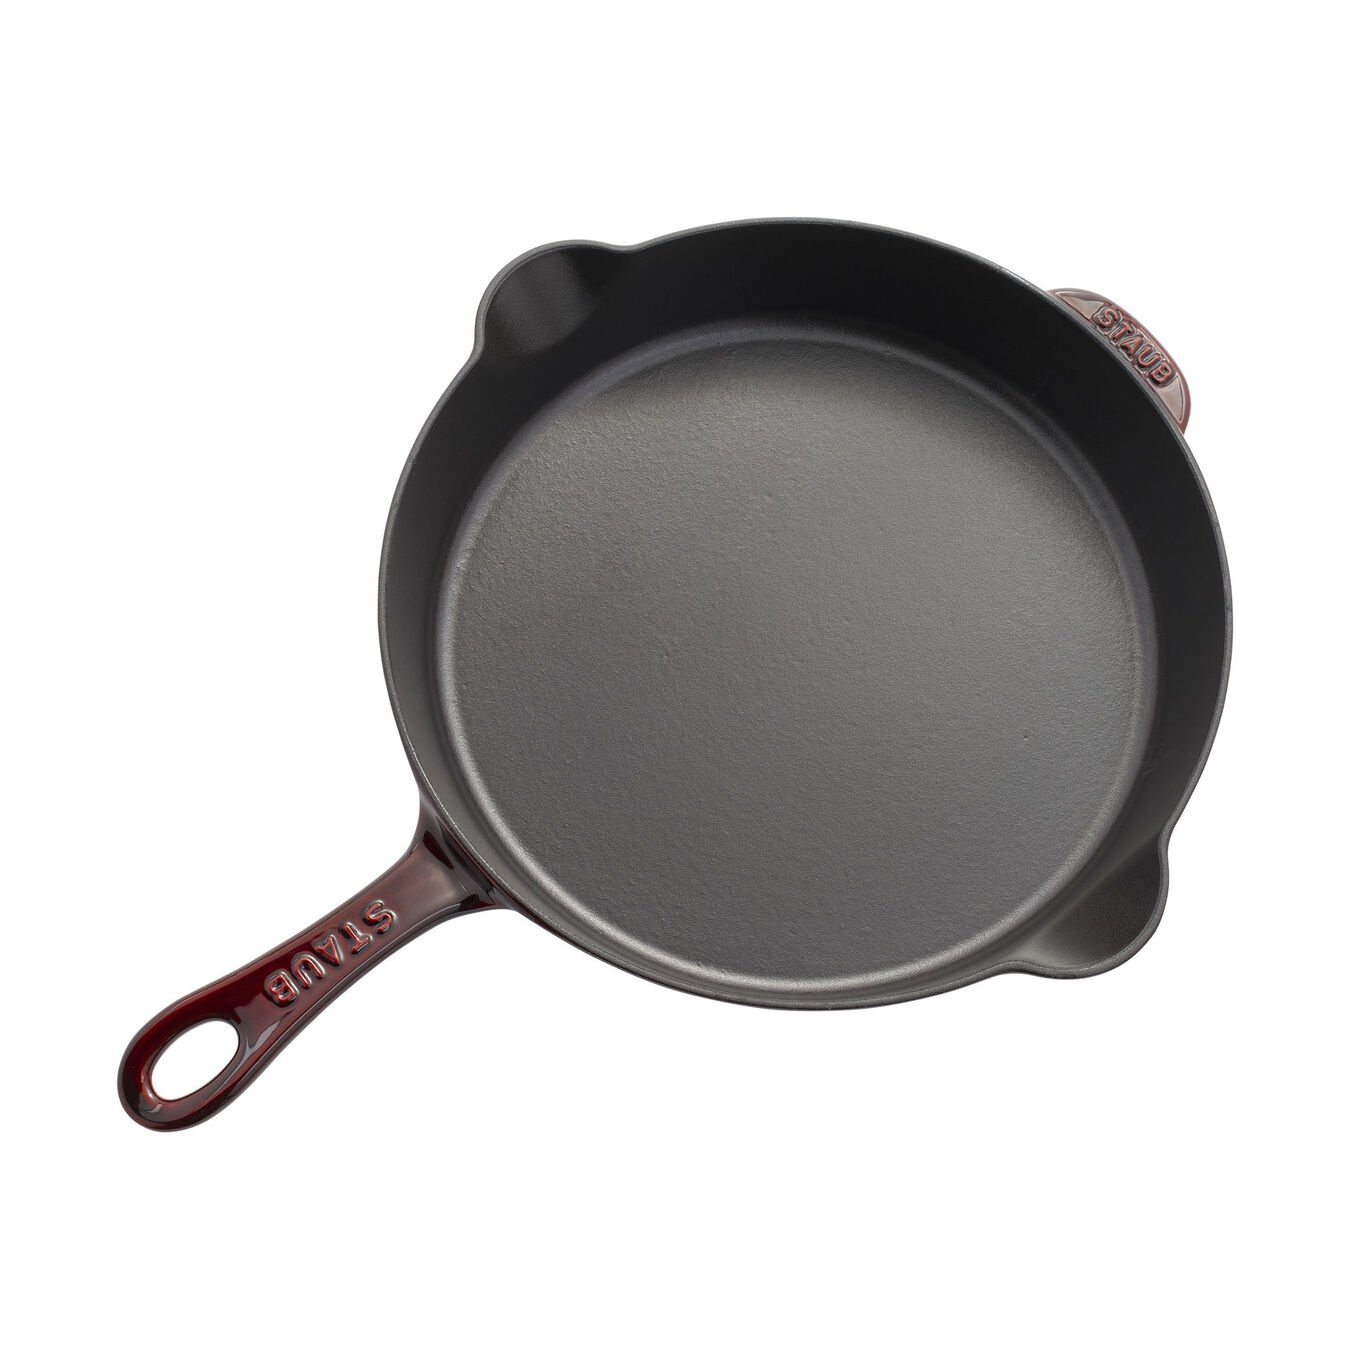 28 cm / 11 inch Frying pan, grenadine-red - Visual Imperfections,,large 2